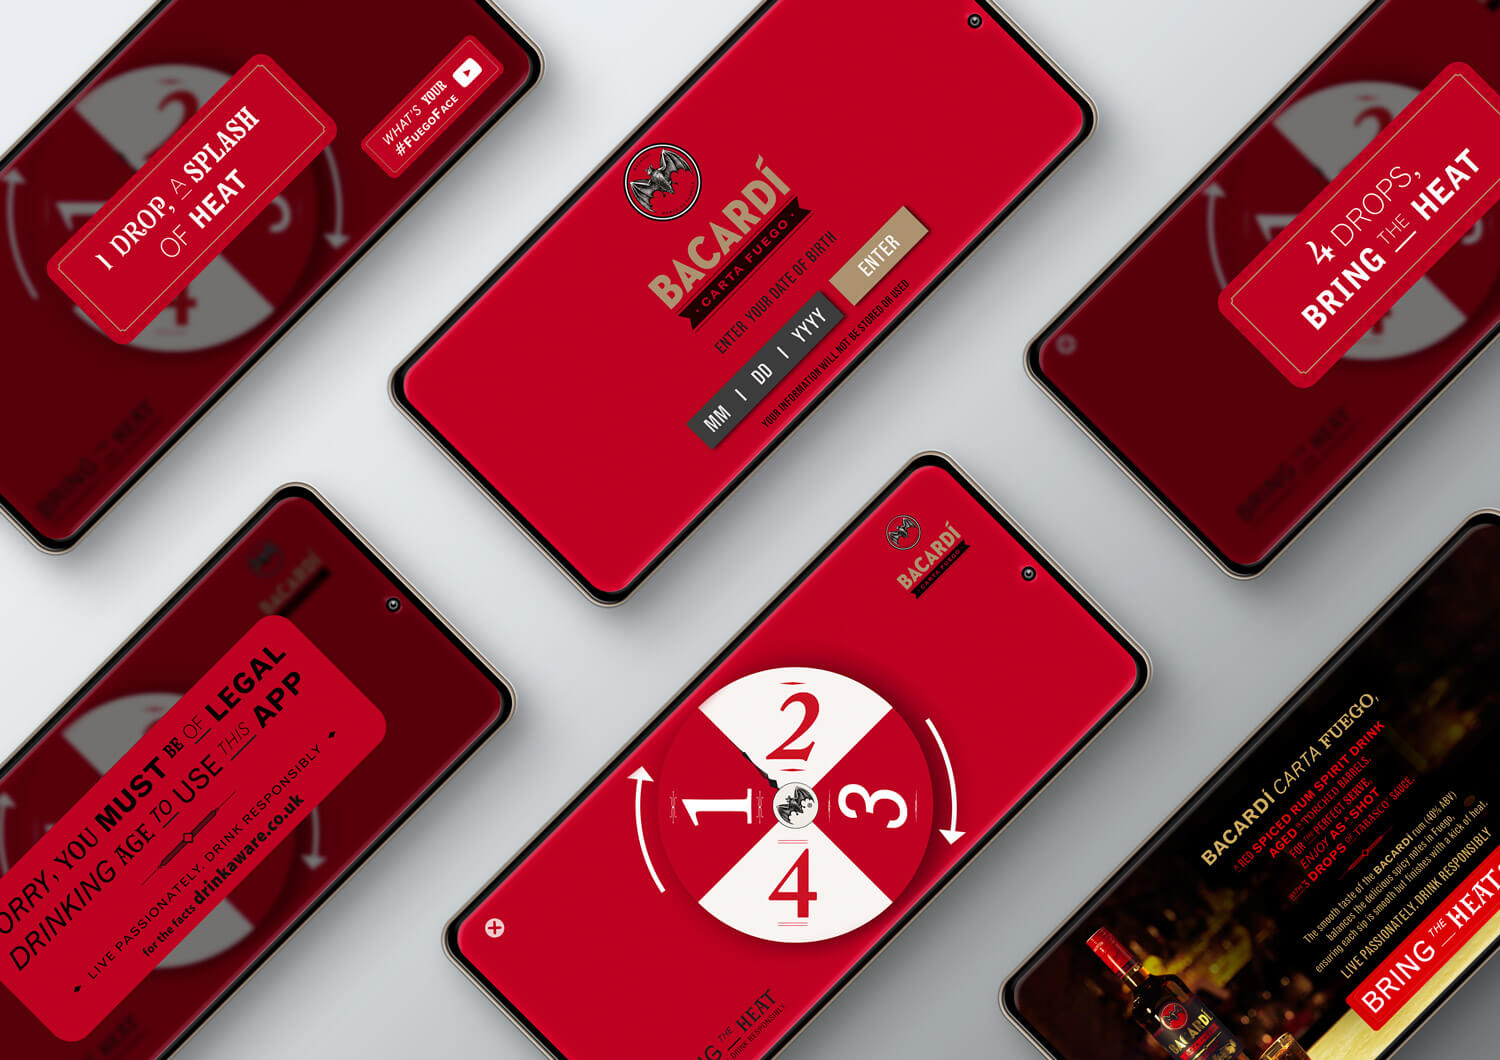 A collection of Black iPhones displaying the Bacardi 'bring the heat' app.